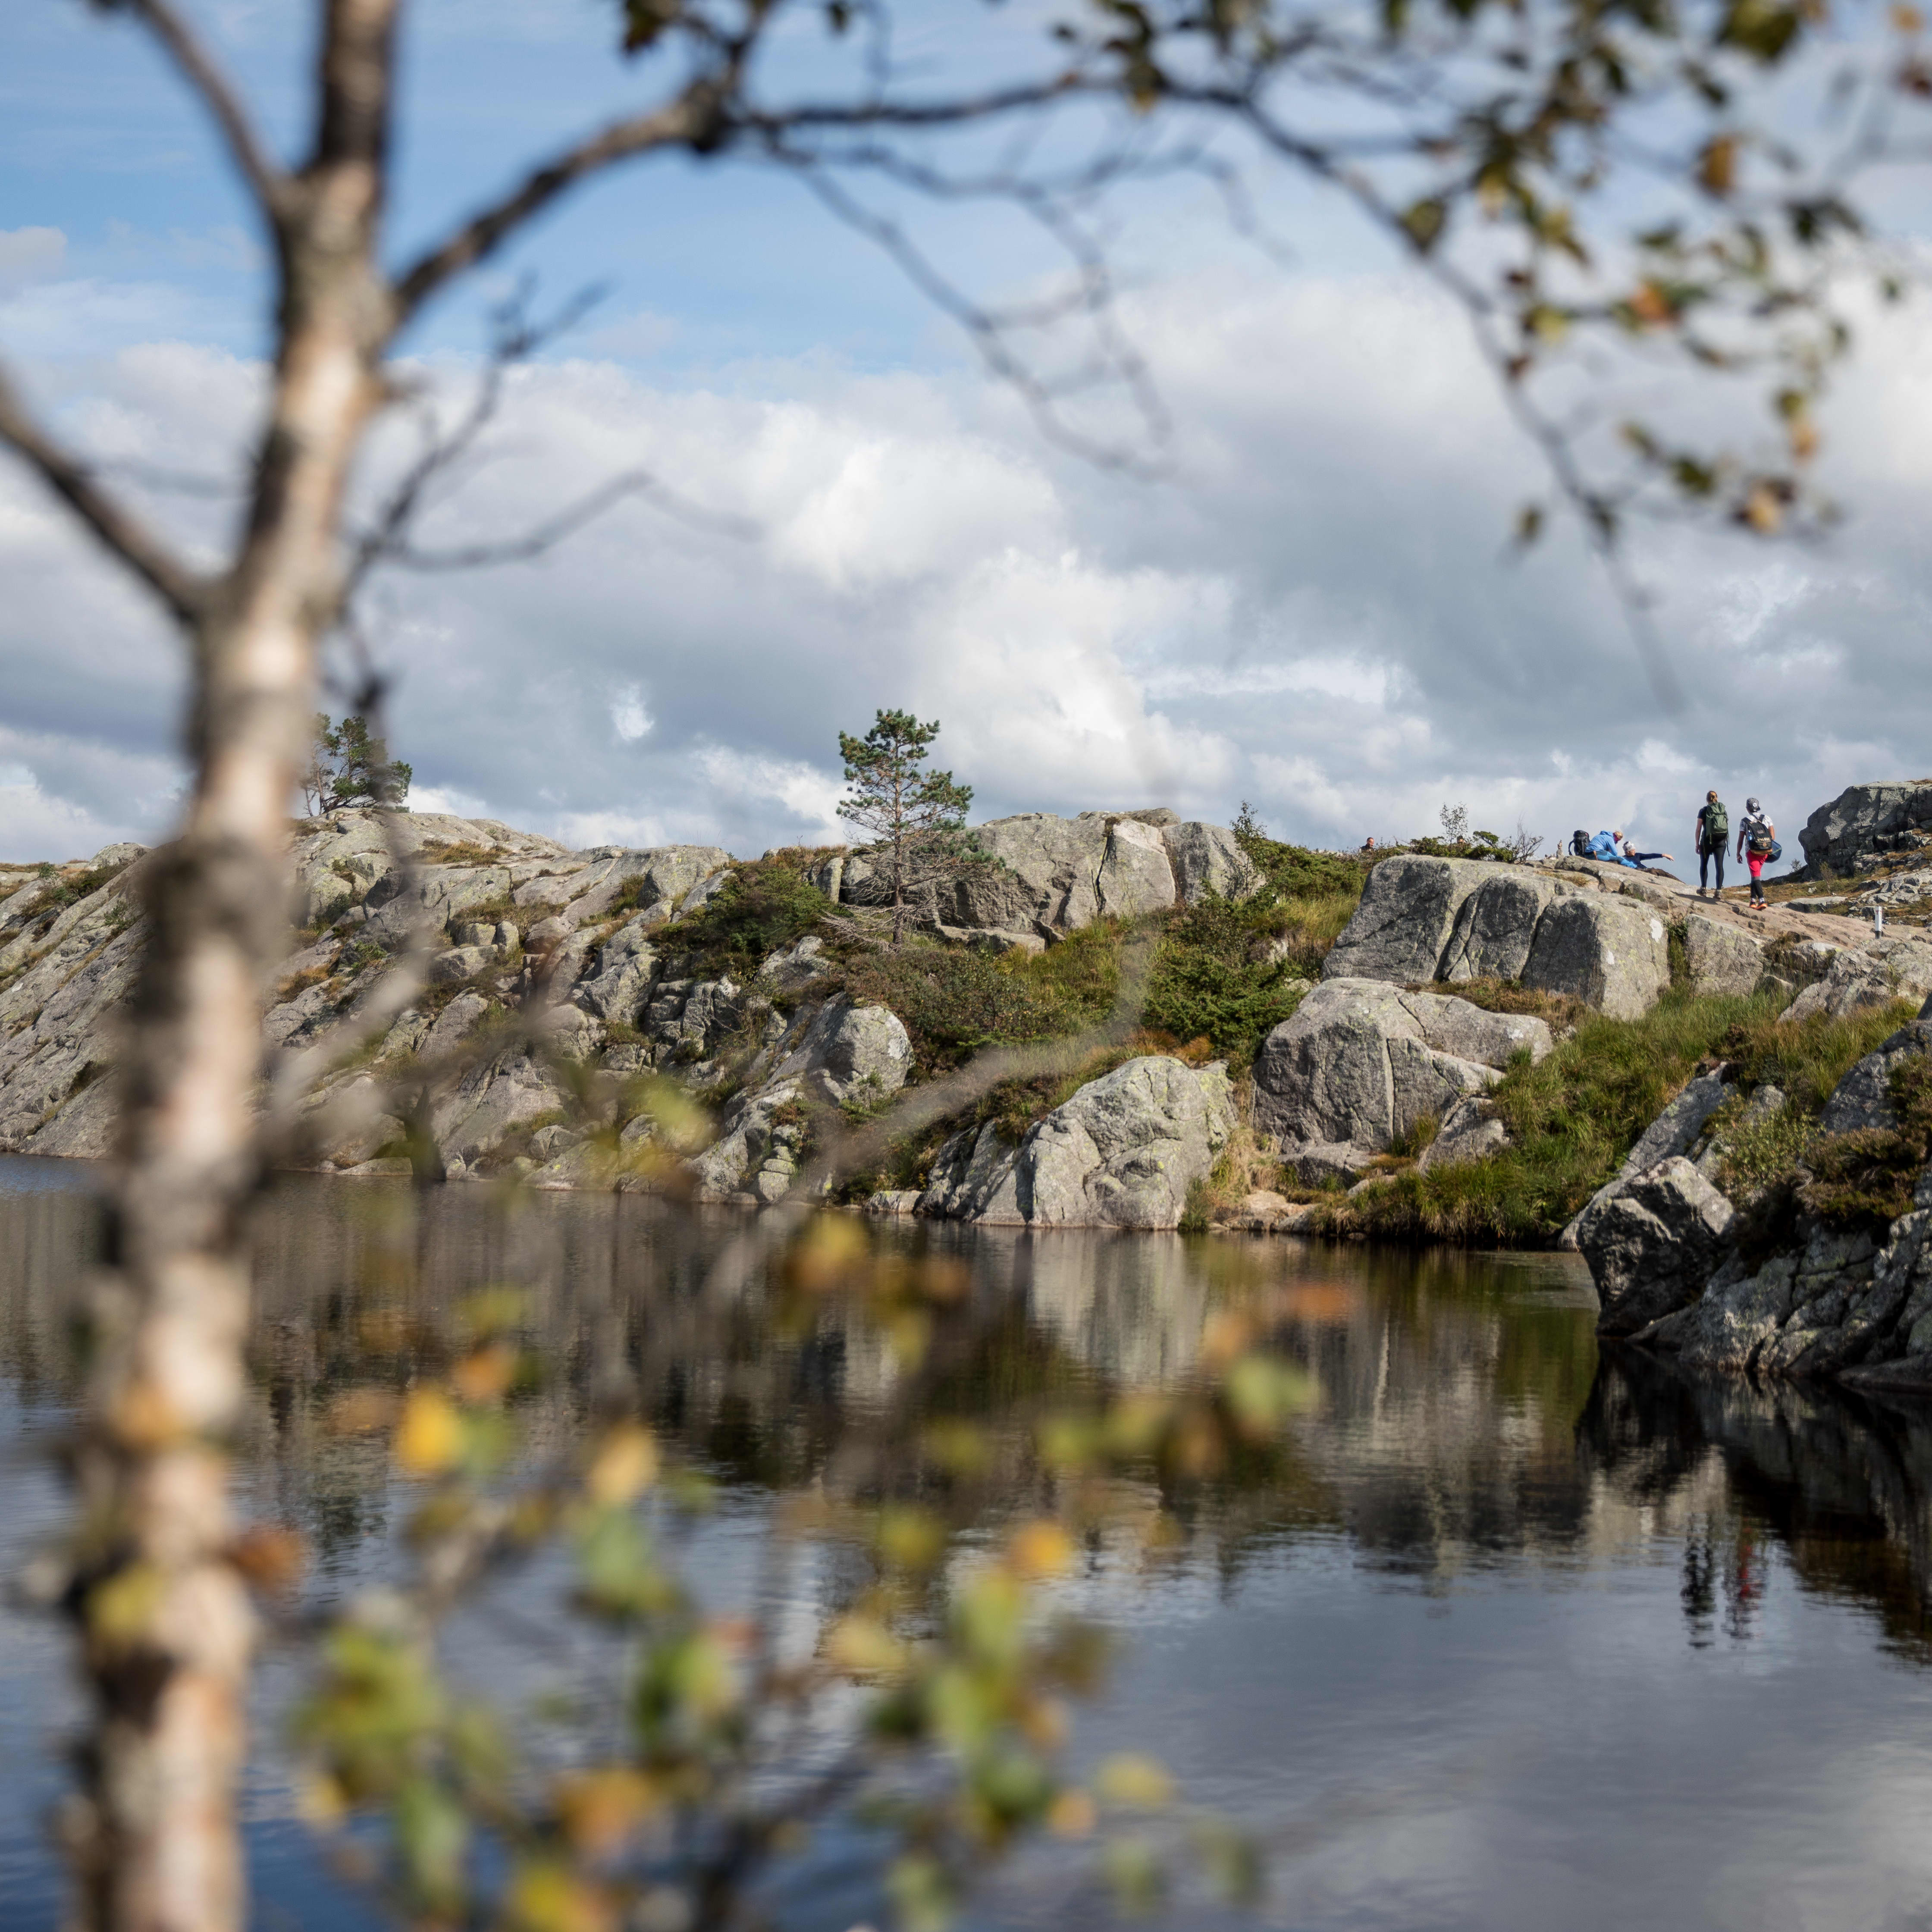 Hikers are walking in the rocky forrest terrain towards Preikestolen. In the foreground is a tree and a water that reflects the hiking terrain.